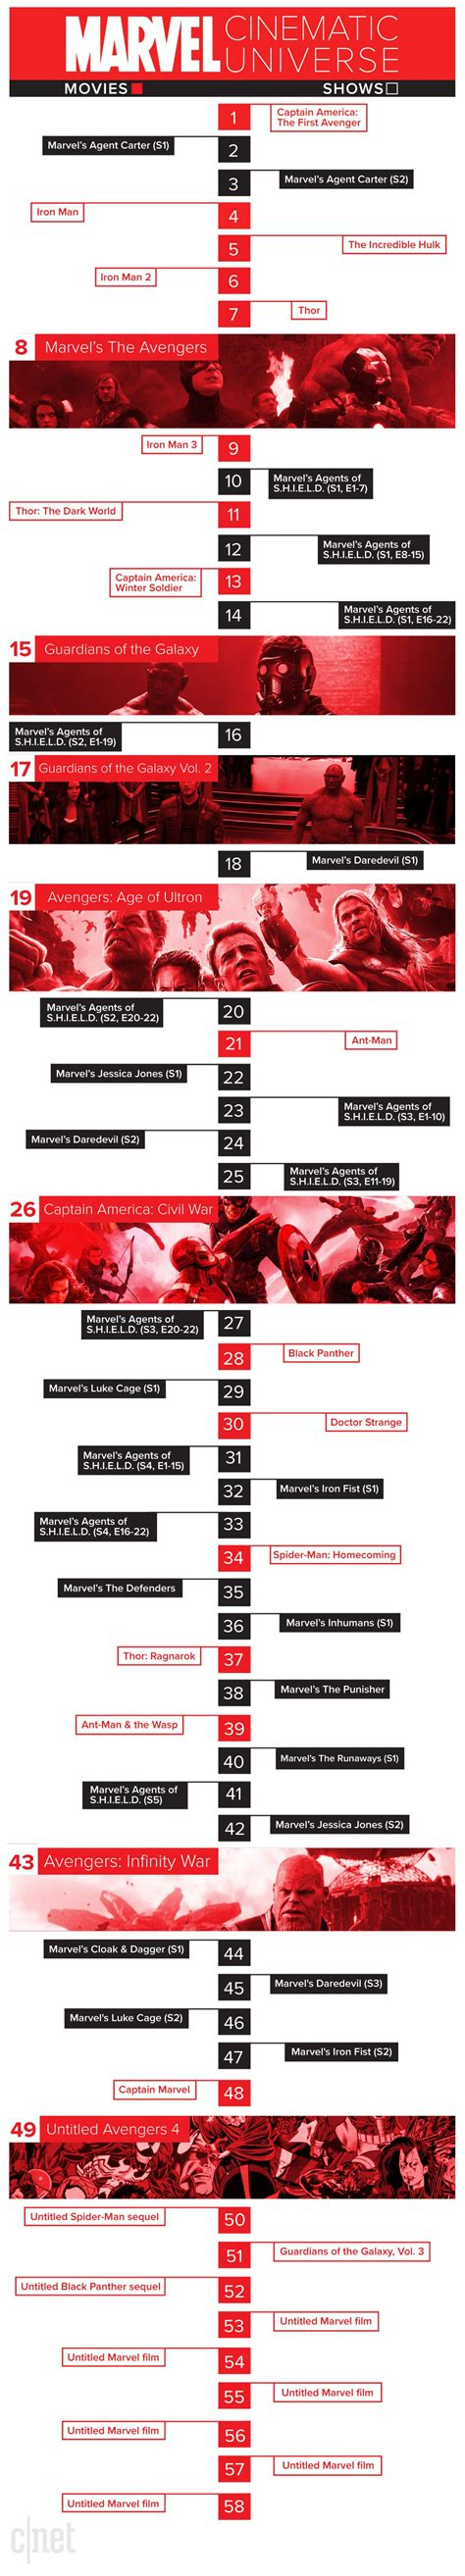 film marvel timeline how to watch every marvel movie and tv show in the perfect